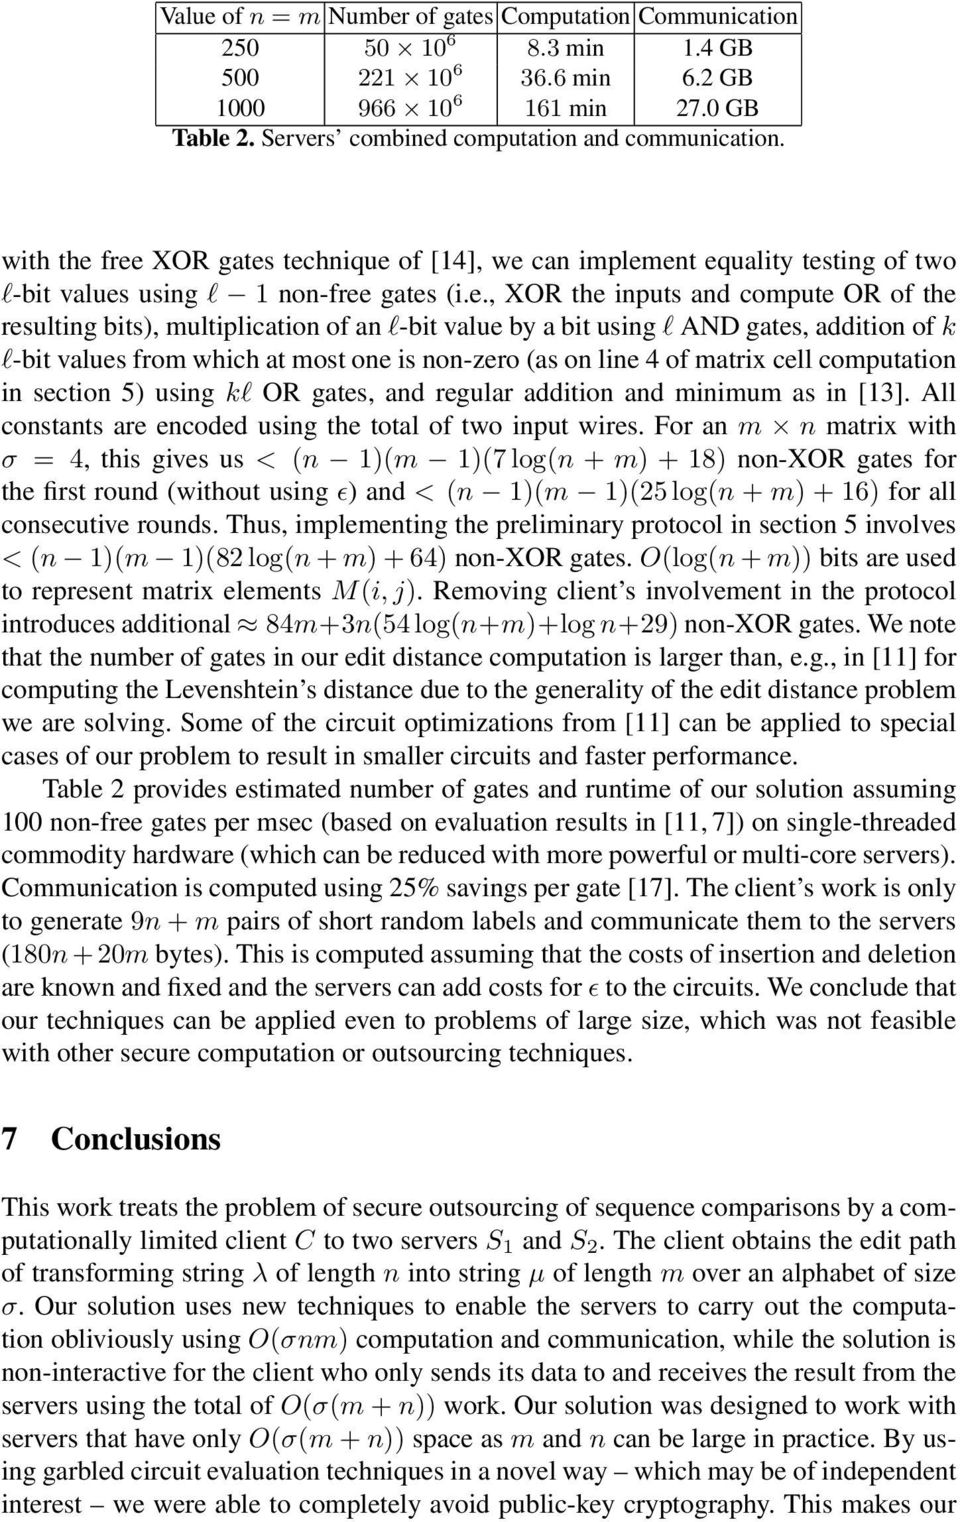 free XOR gates technique of [14], we can implement equality testing of two l-bit values using l 1 non-free gates (i.e., XOR the inputs and compute OR of the resulting bits), multiplication of an